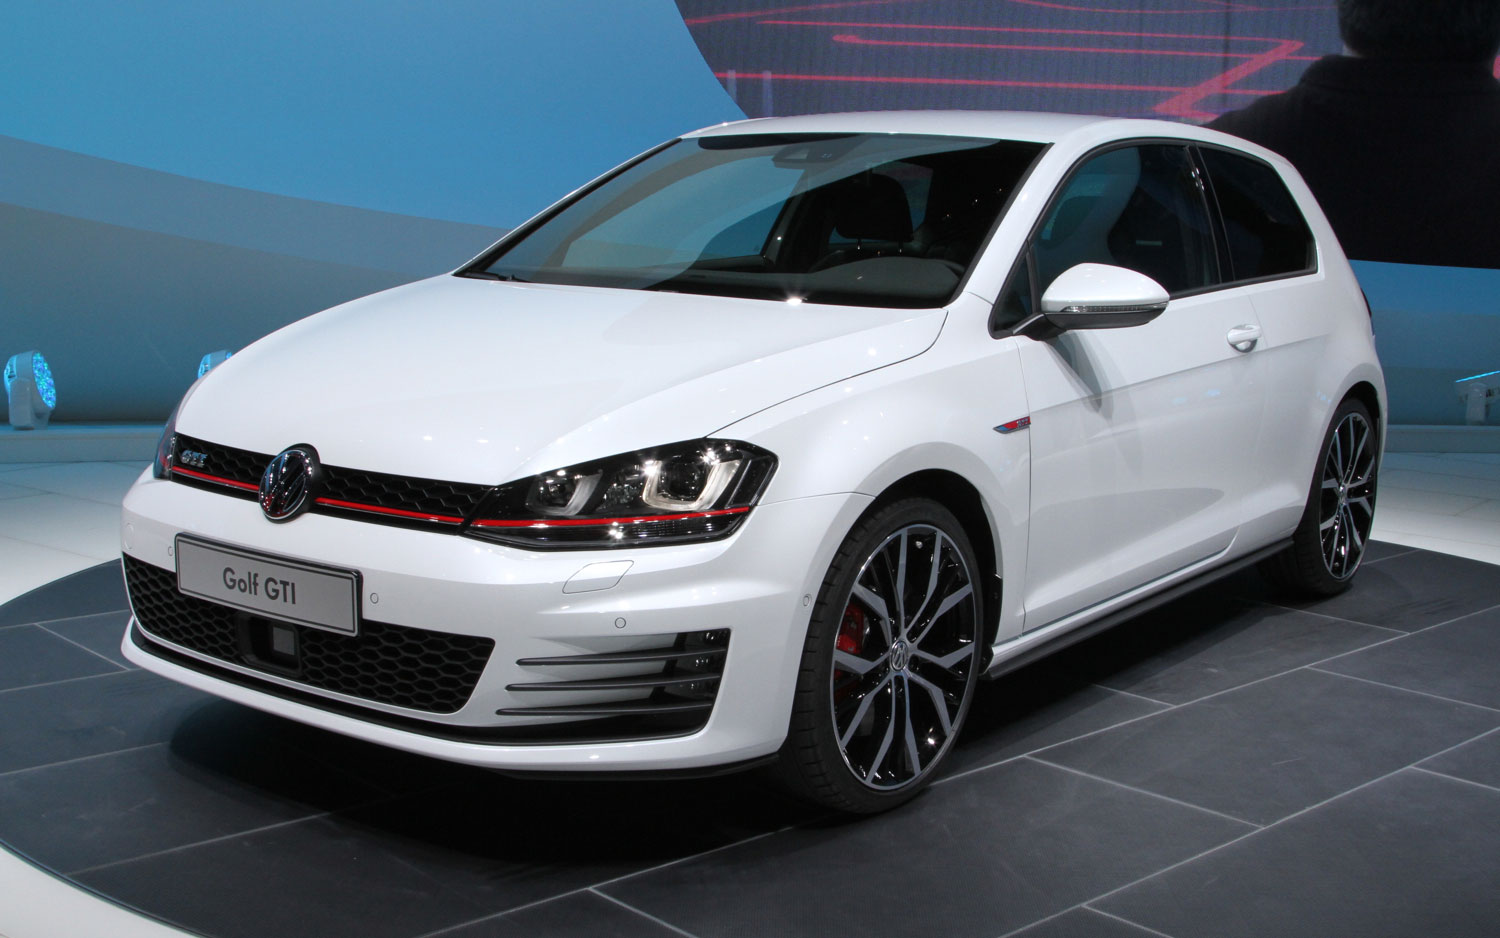 2015 volkswagen golf gti image 5. Black Bedroom Furniture Sets. Home Design Ideas